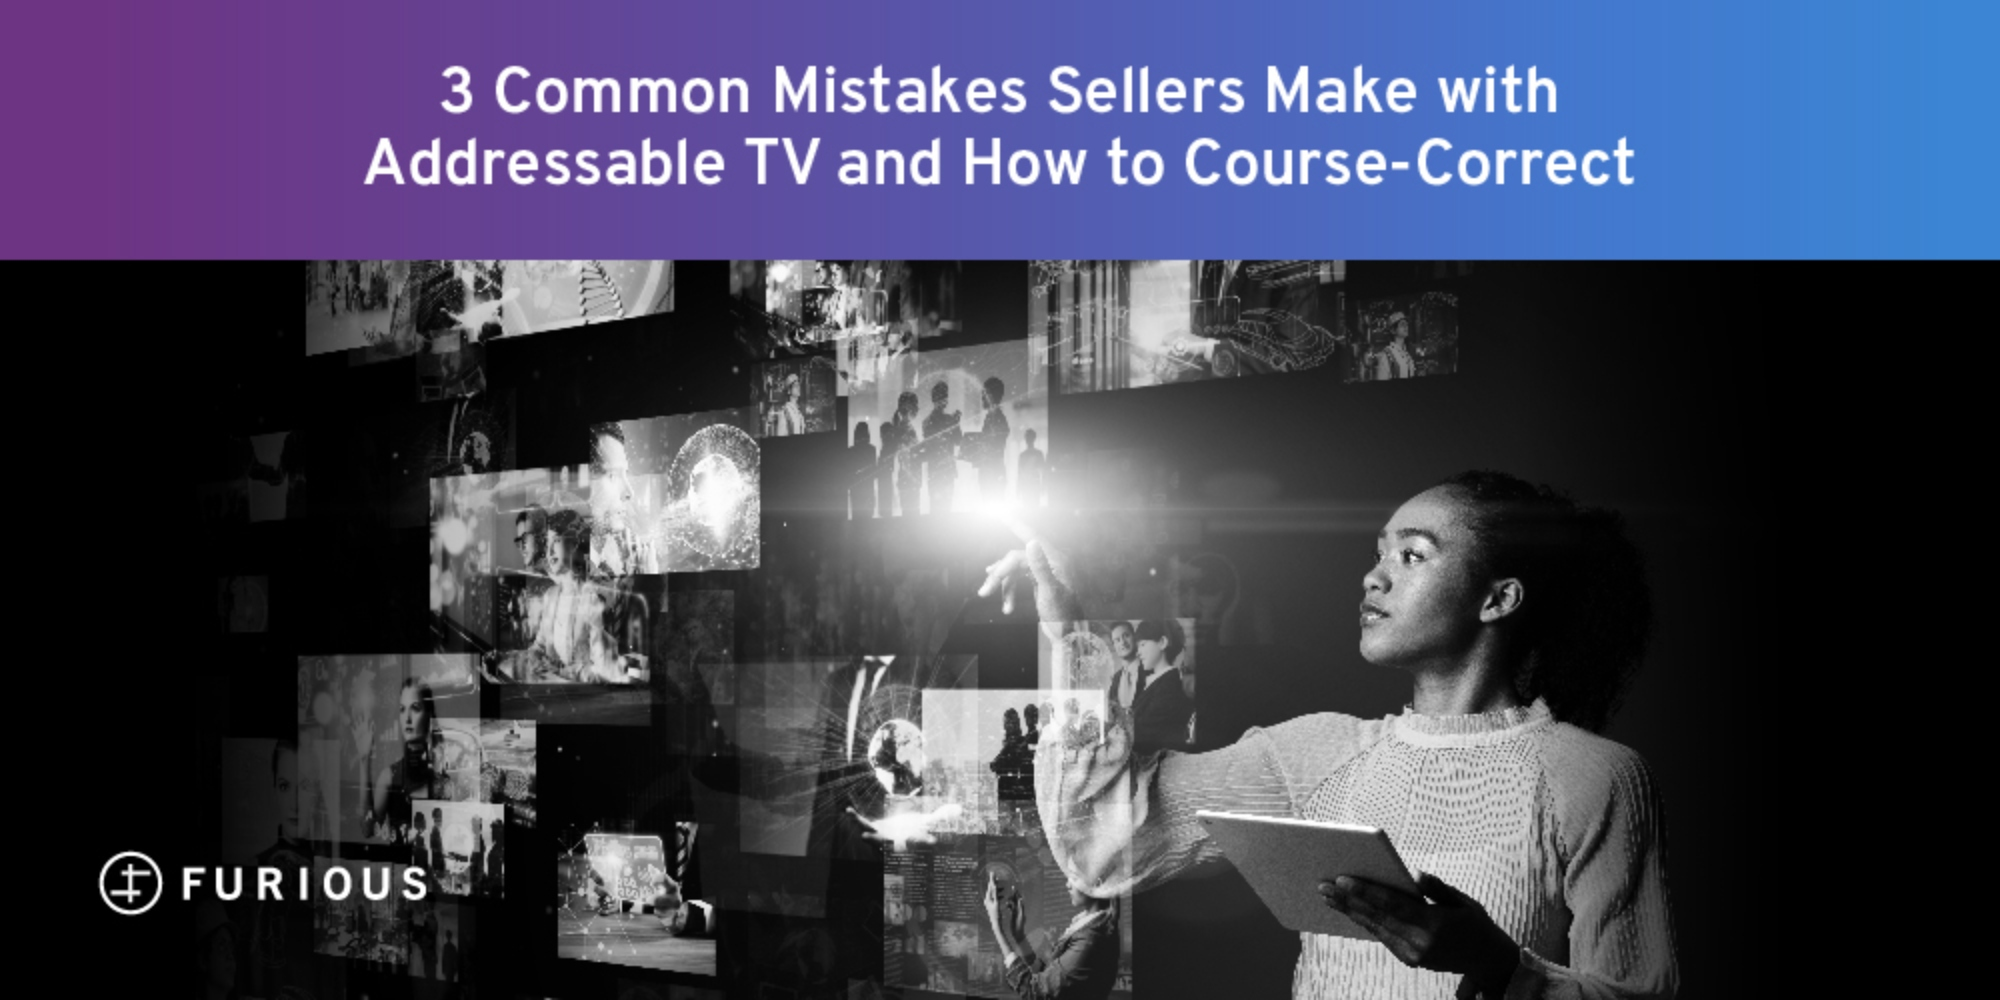 3 Common Mistakes Sellers Make with Addressable TV and How to Course-Correct